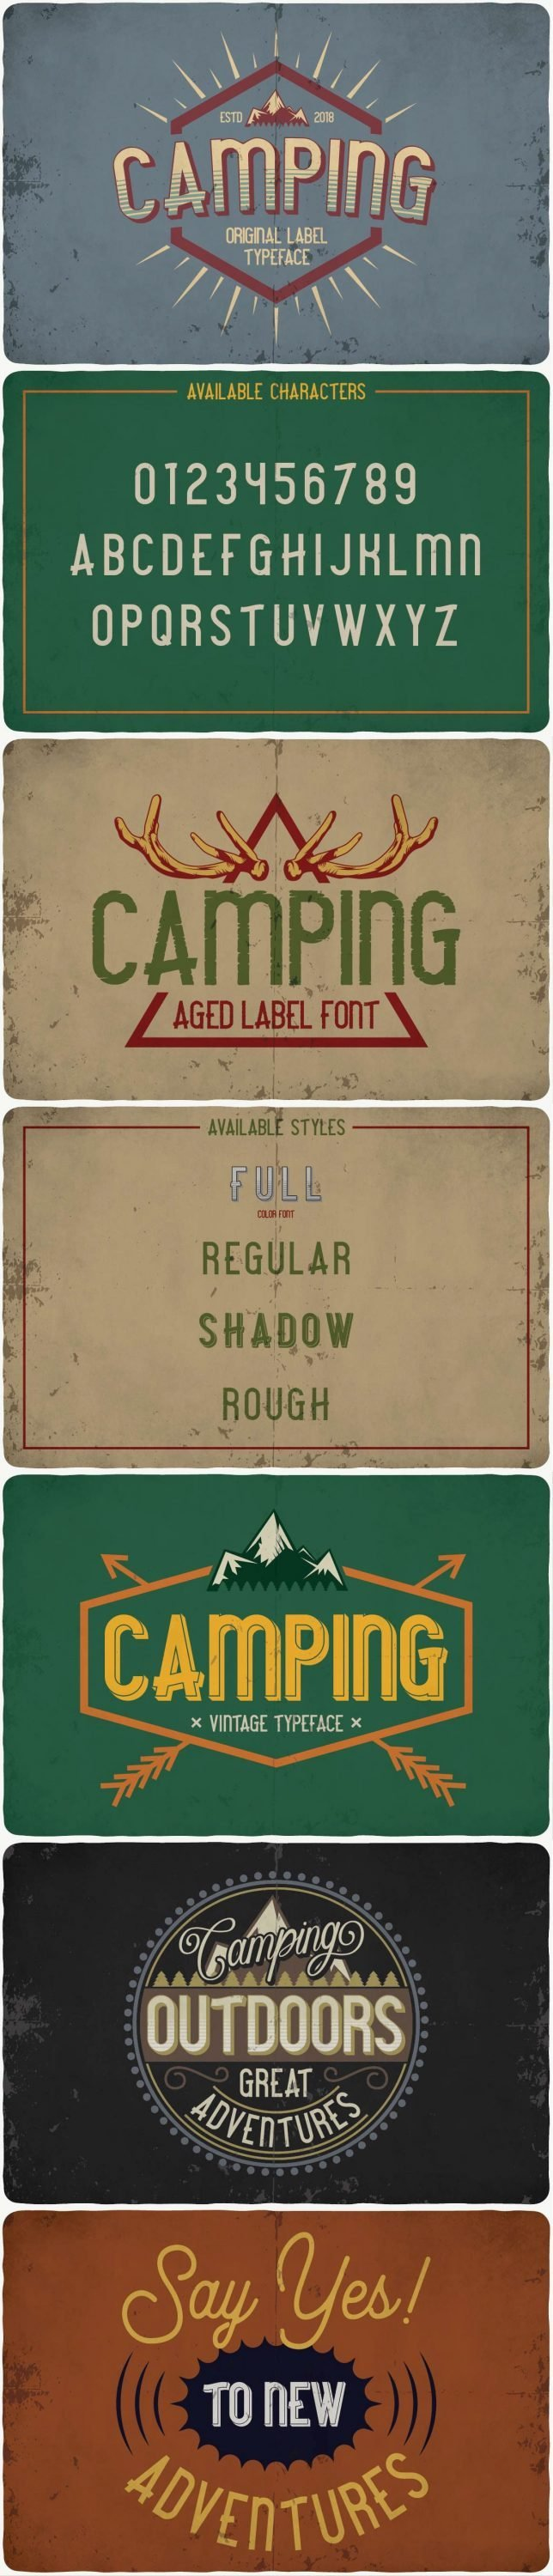 Camping Font for pinterest.